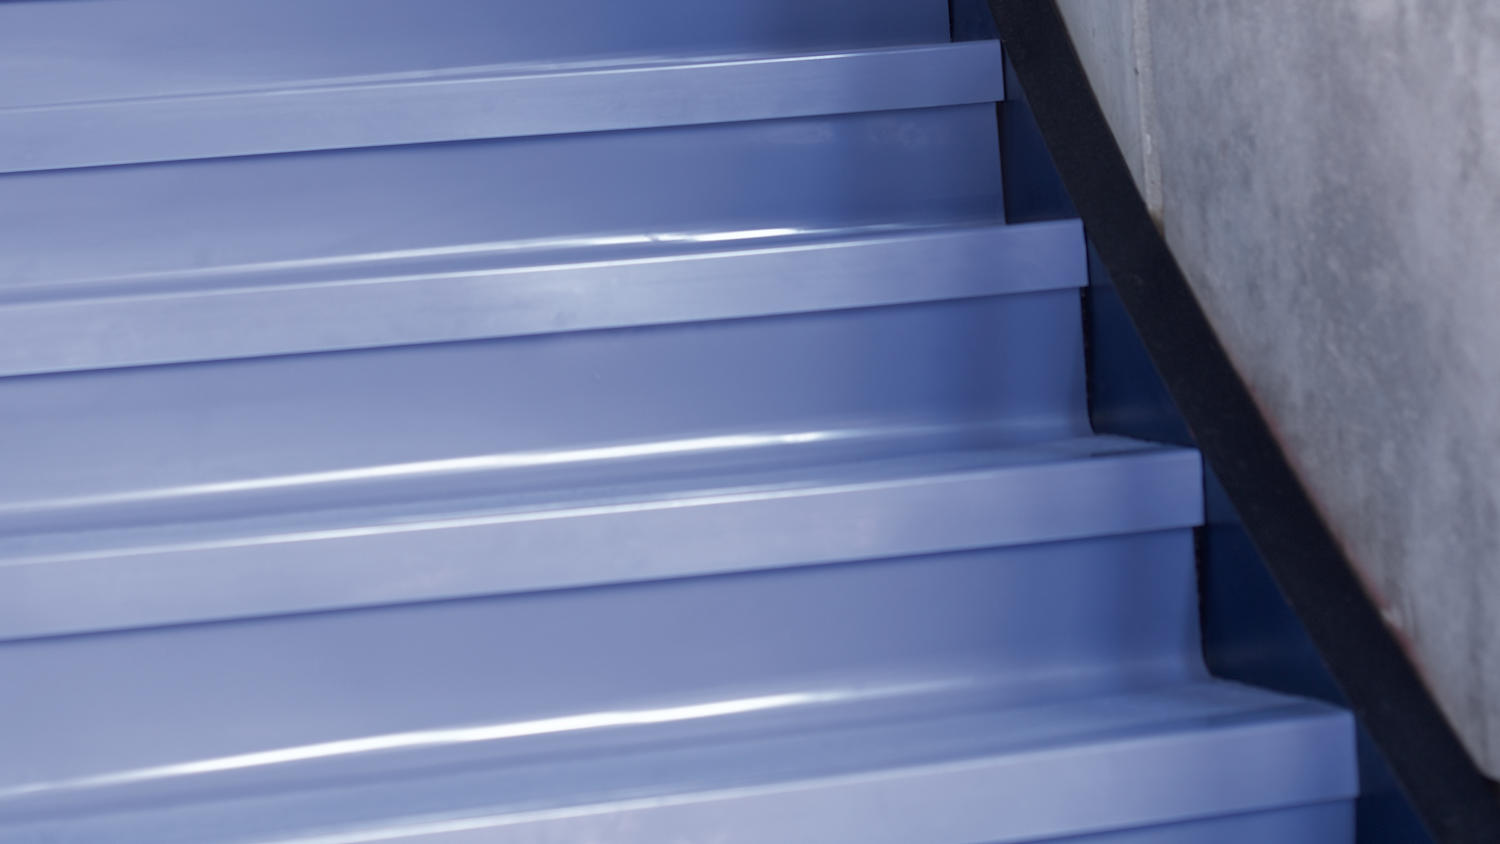 Angle Fit Rubber Stair Tread With Integrated Riser Stair Treads Risers Tarkett